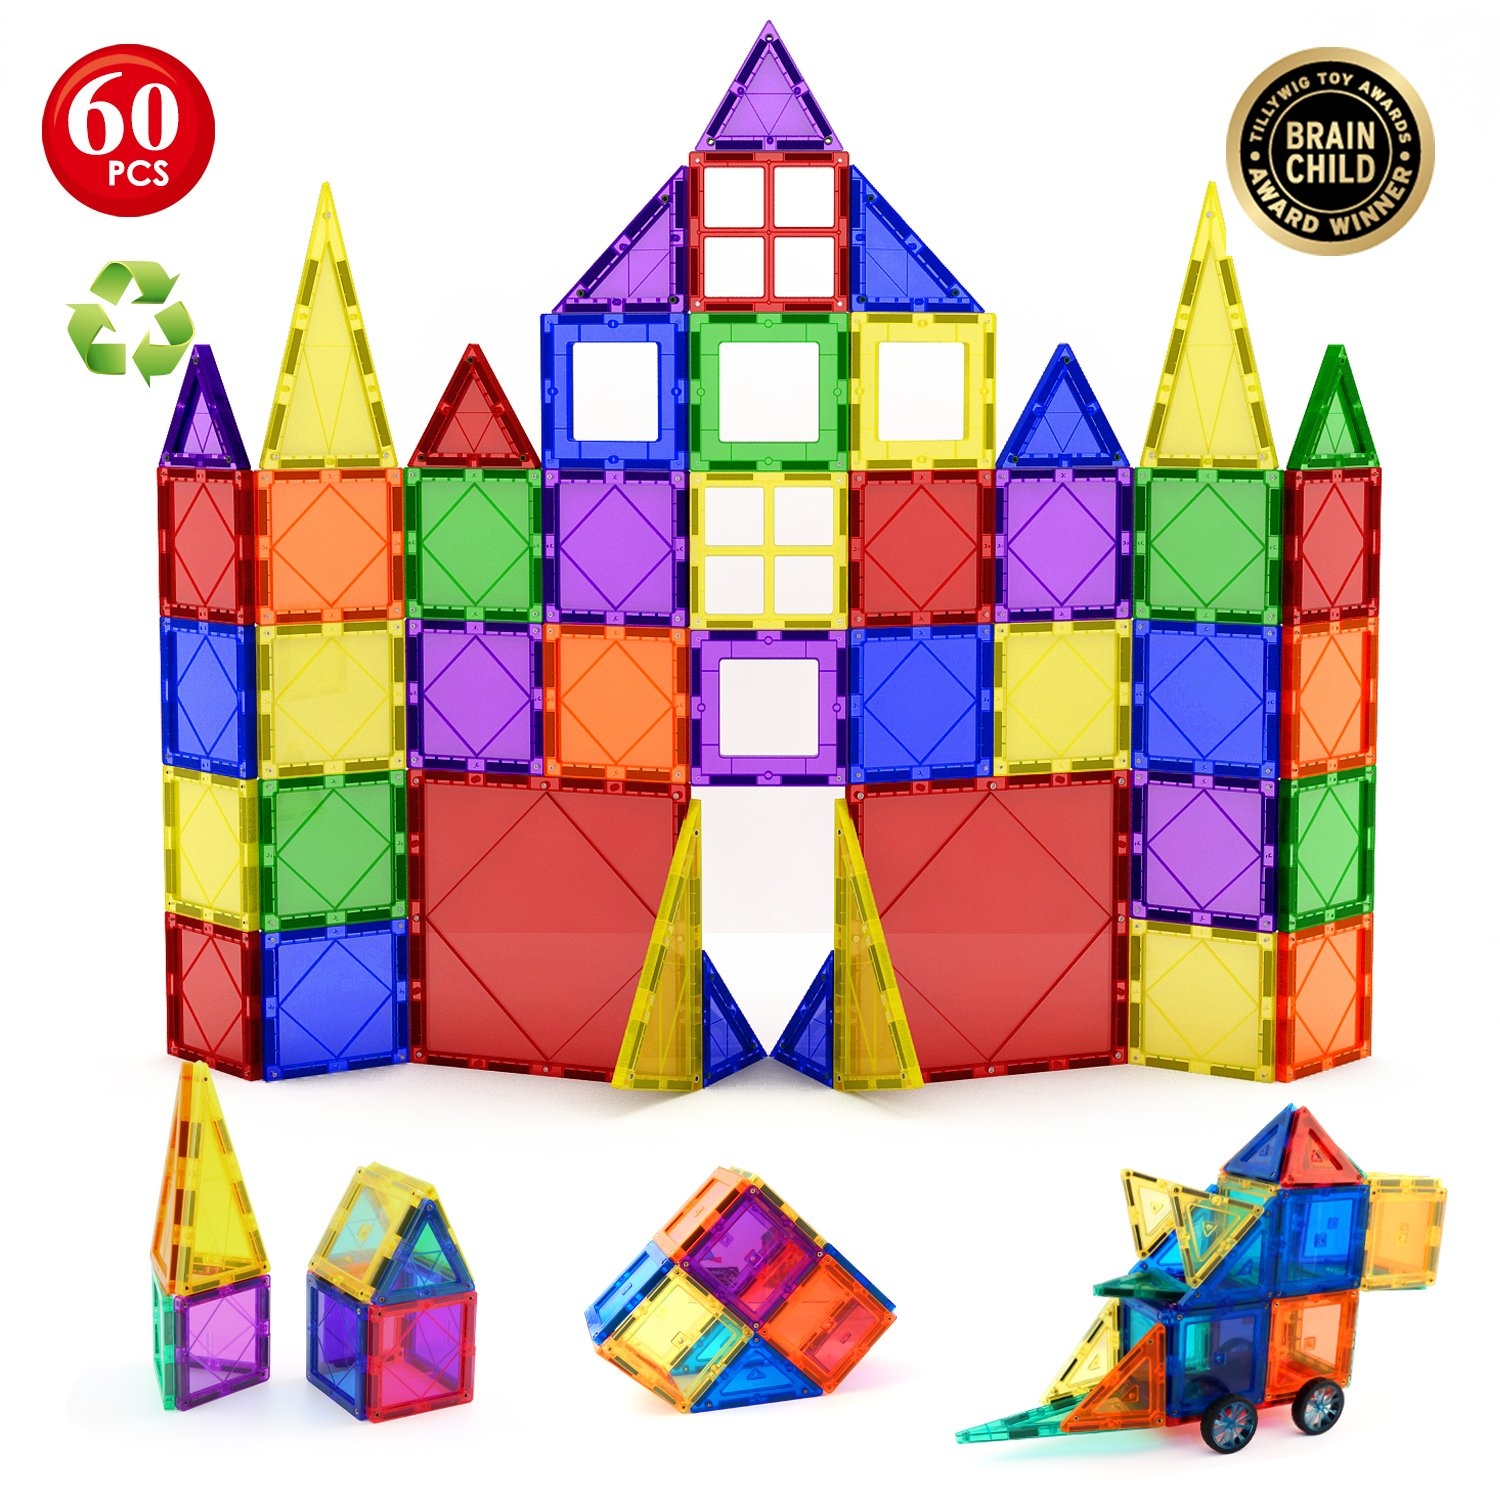 Children Hub 60pcs Magnetic Tiles Set - 3D Magnet Building Blocks - Premium Quality Educational Toys for Your Kids - Upgraded Version with Strong Magnets - Creativity, Imagination, Inspiration Shoppers Smart 5264841